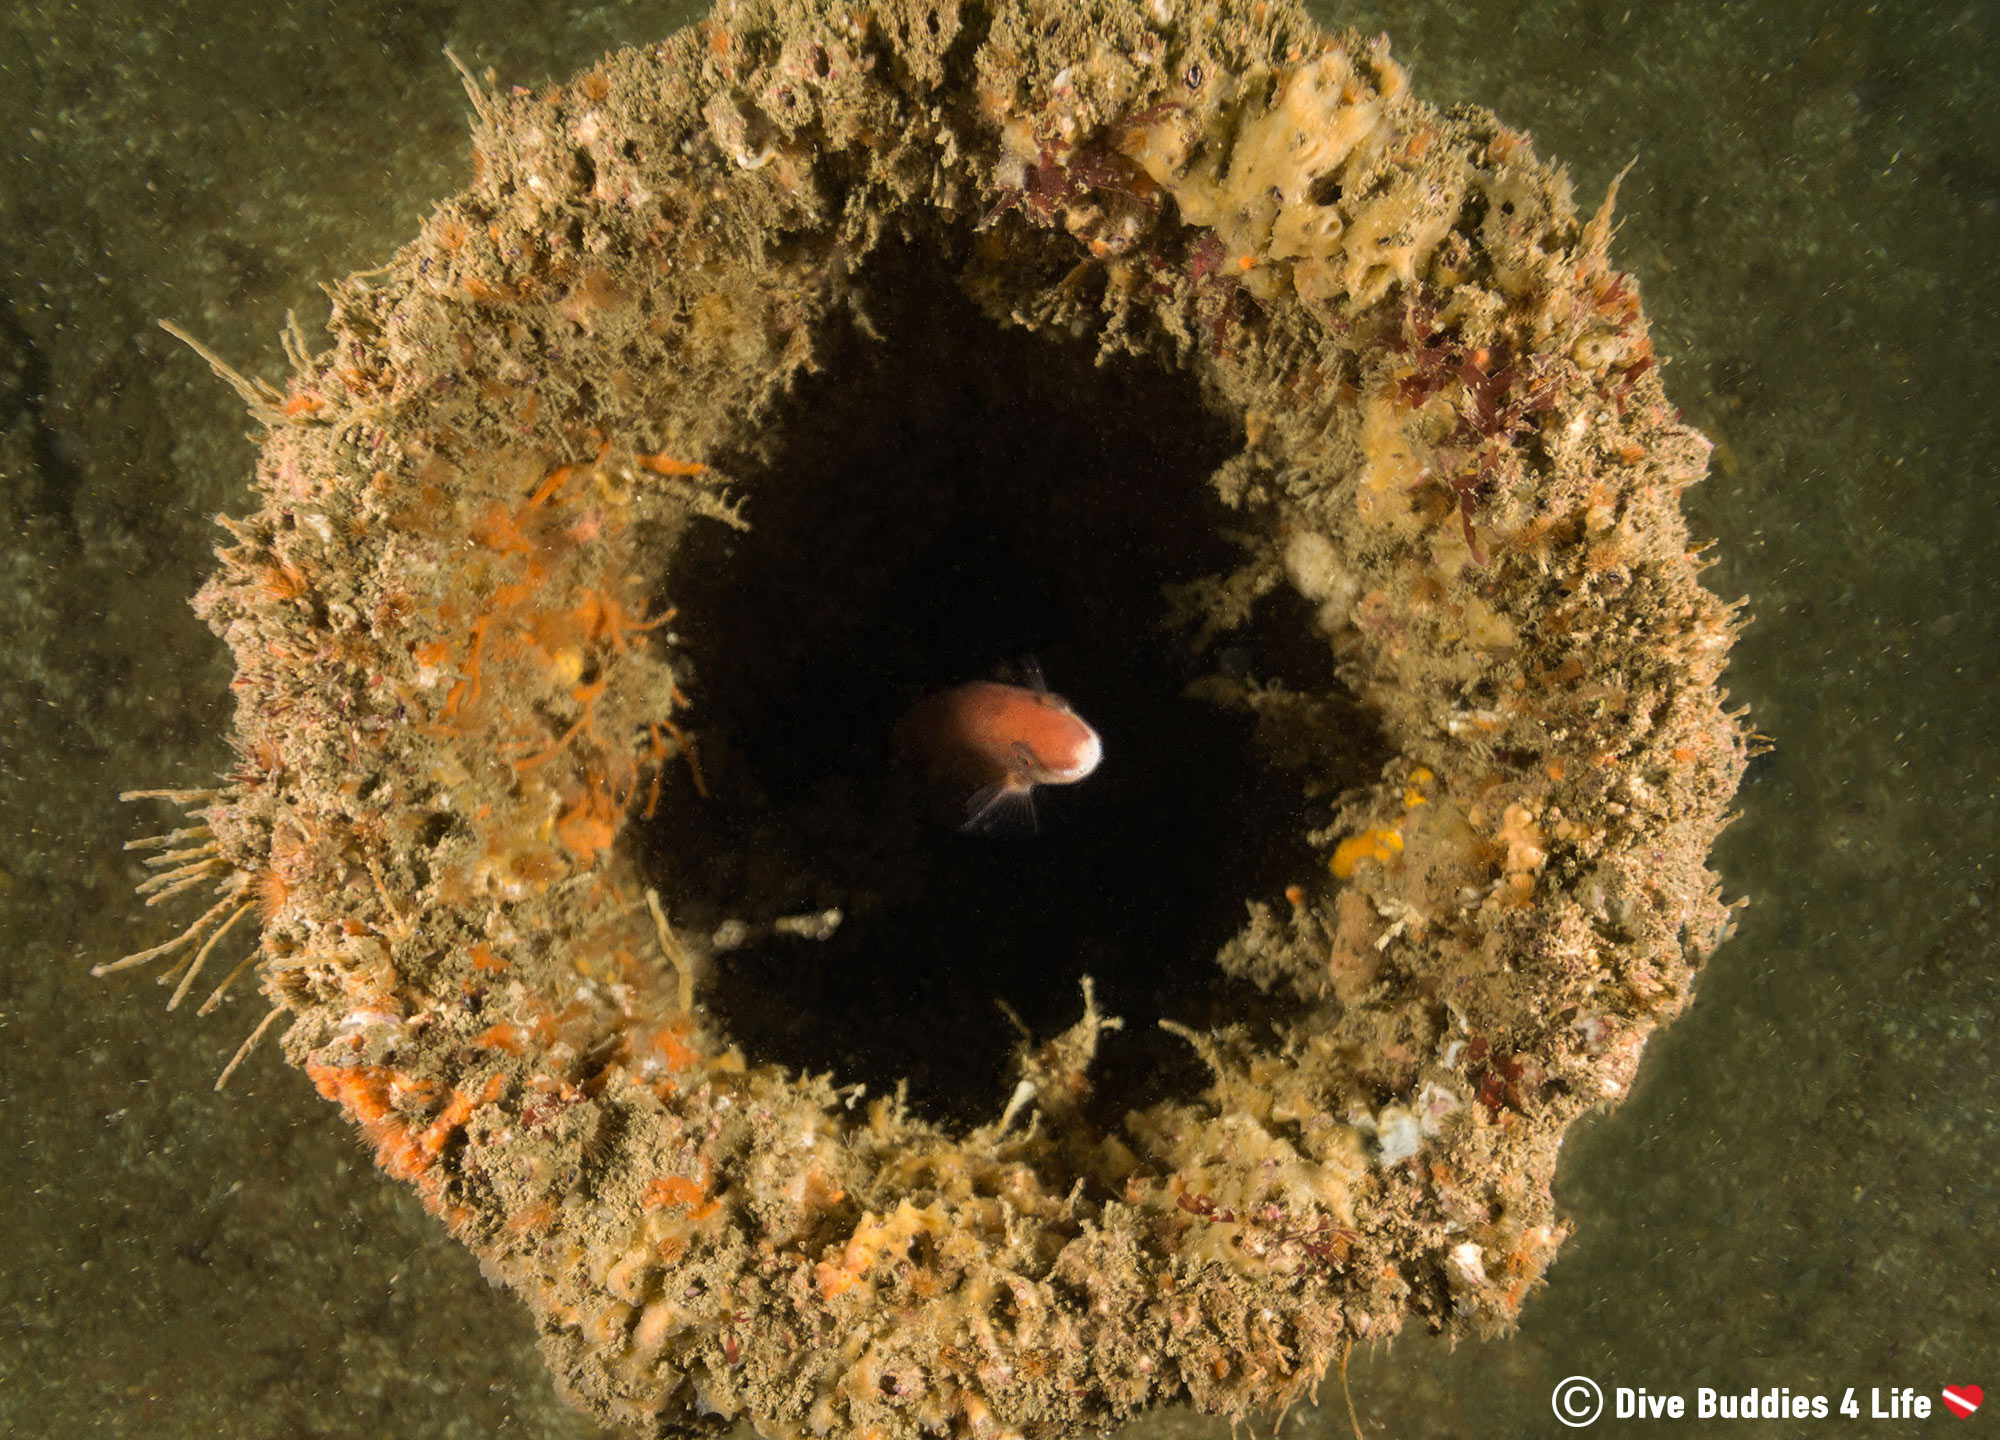 A Fish In The Barrel Of A Gun From A Sunken Normandy Shipwreck, France